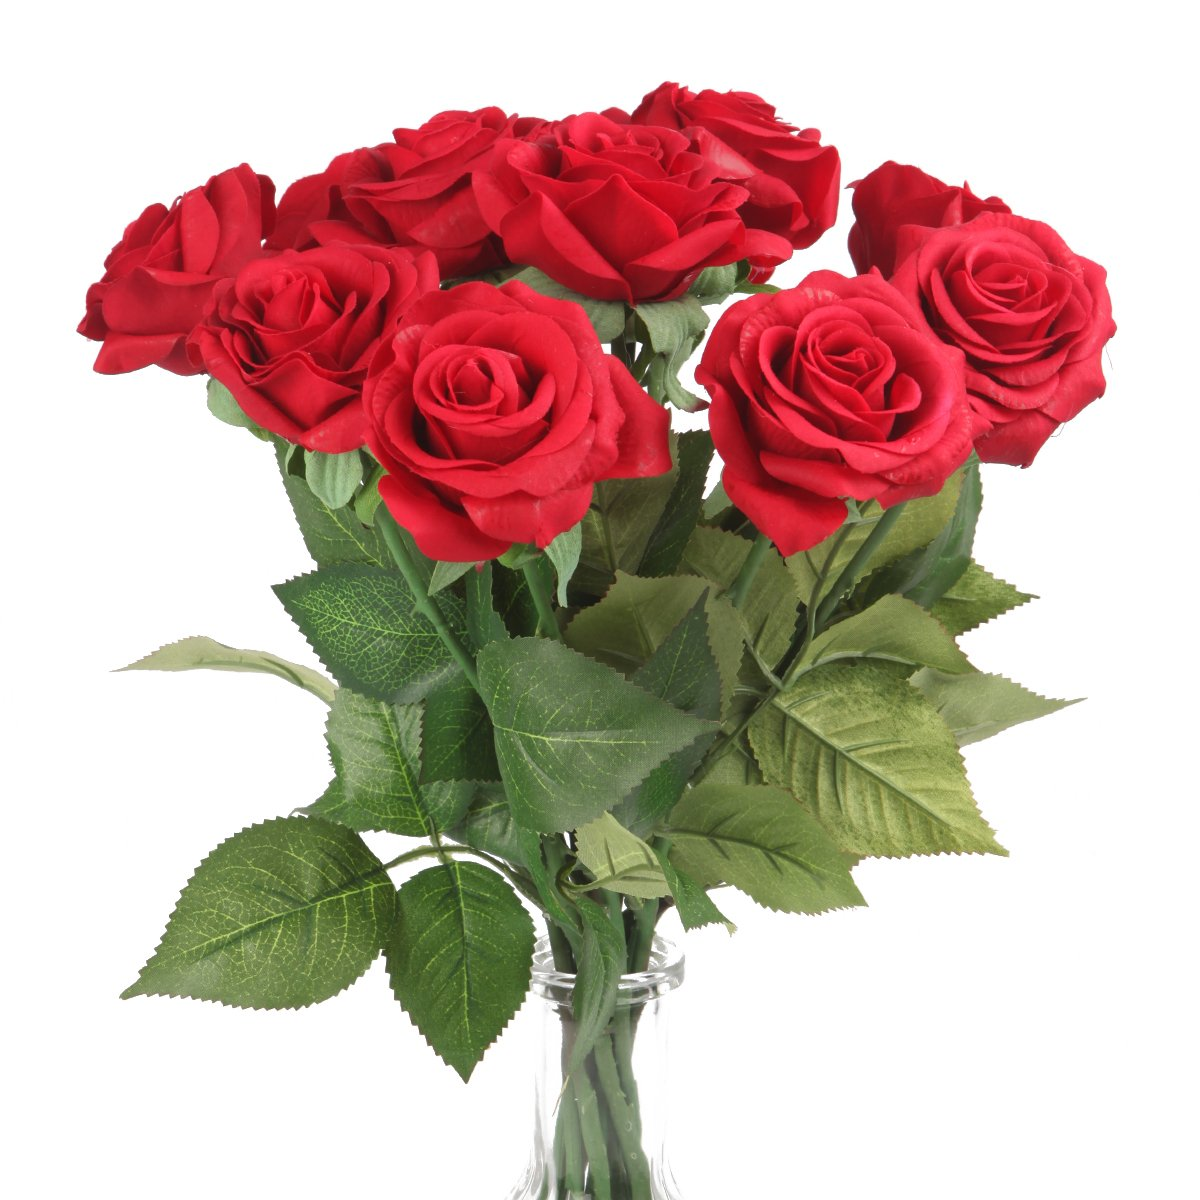 (3, Red) - Silk Rose 43cm Artificial Flowers As Natural -Louis Garden (3, Red) B01M9F7YE4 レッド|3 レッド